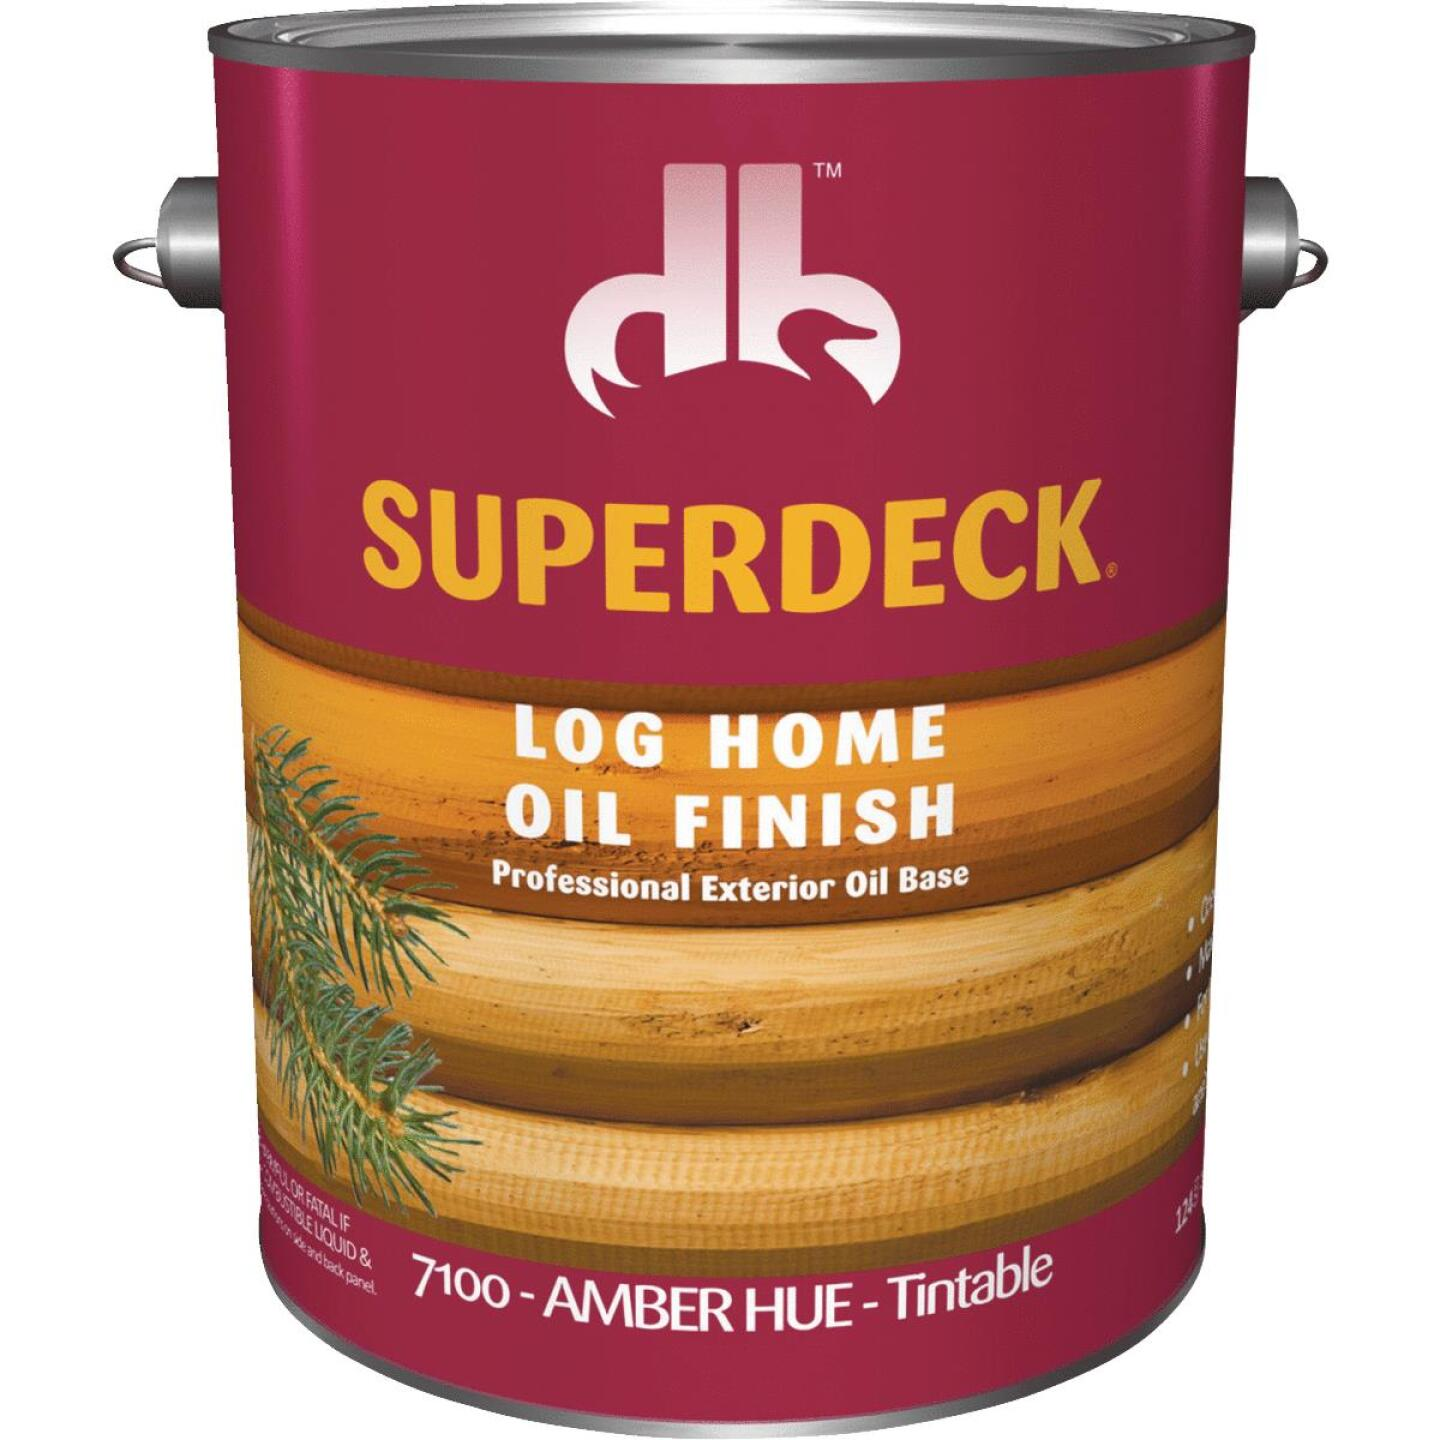 Duckback SUPERDECK Translucent Log Home Oil Finish, Amber Hue, 1 Gal. Image 1